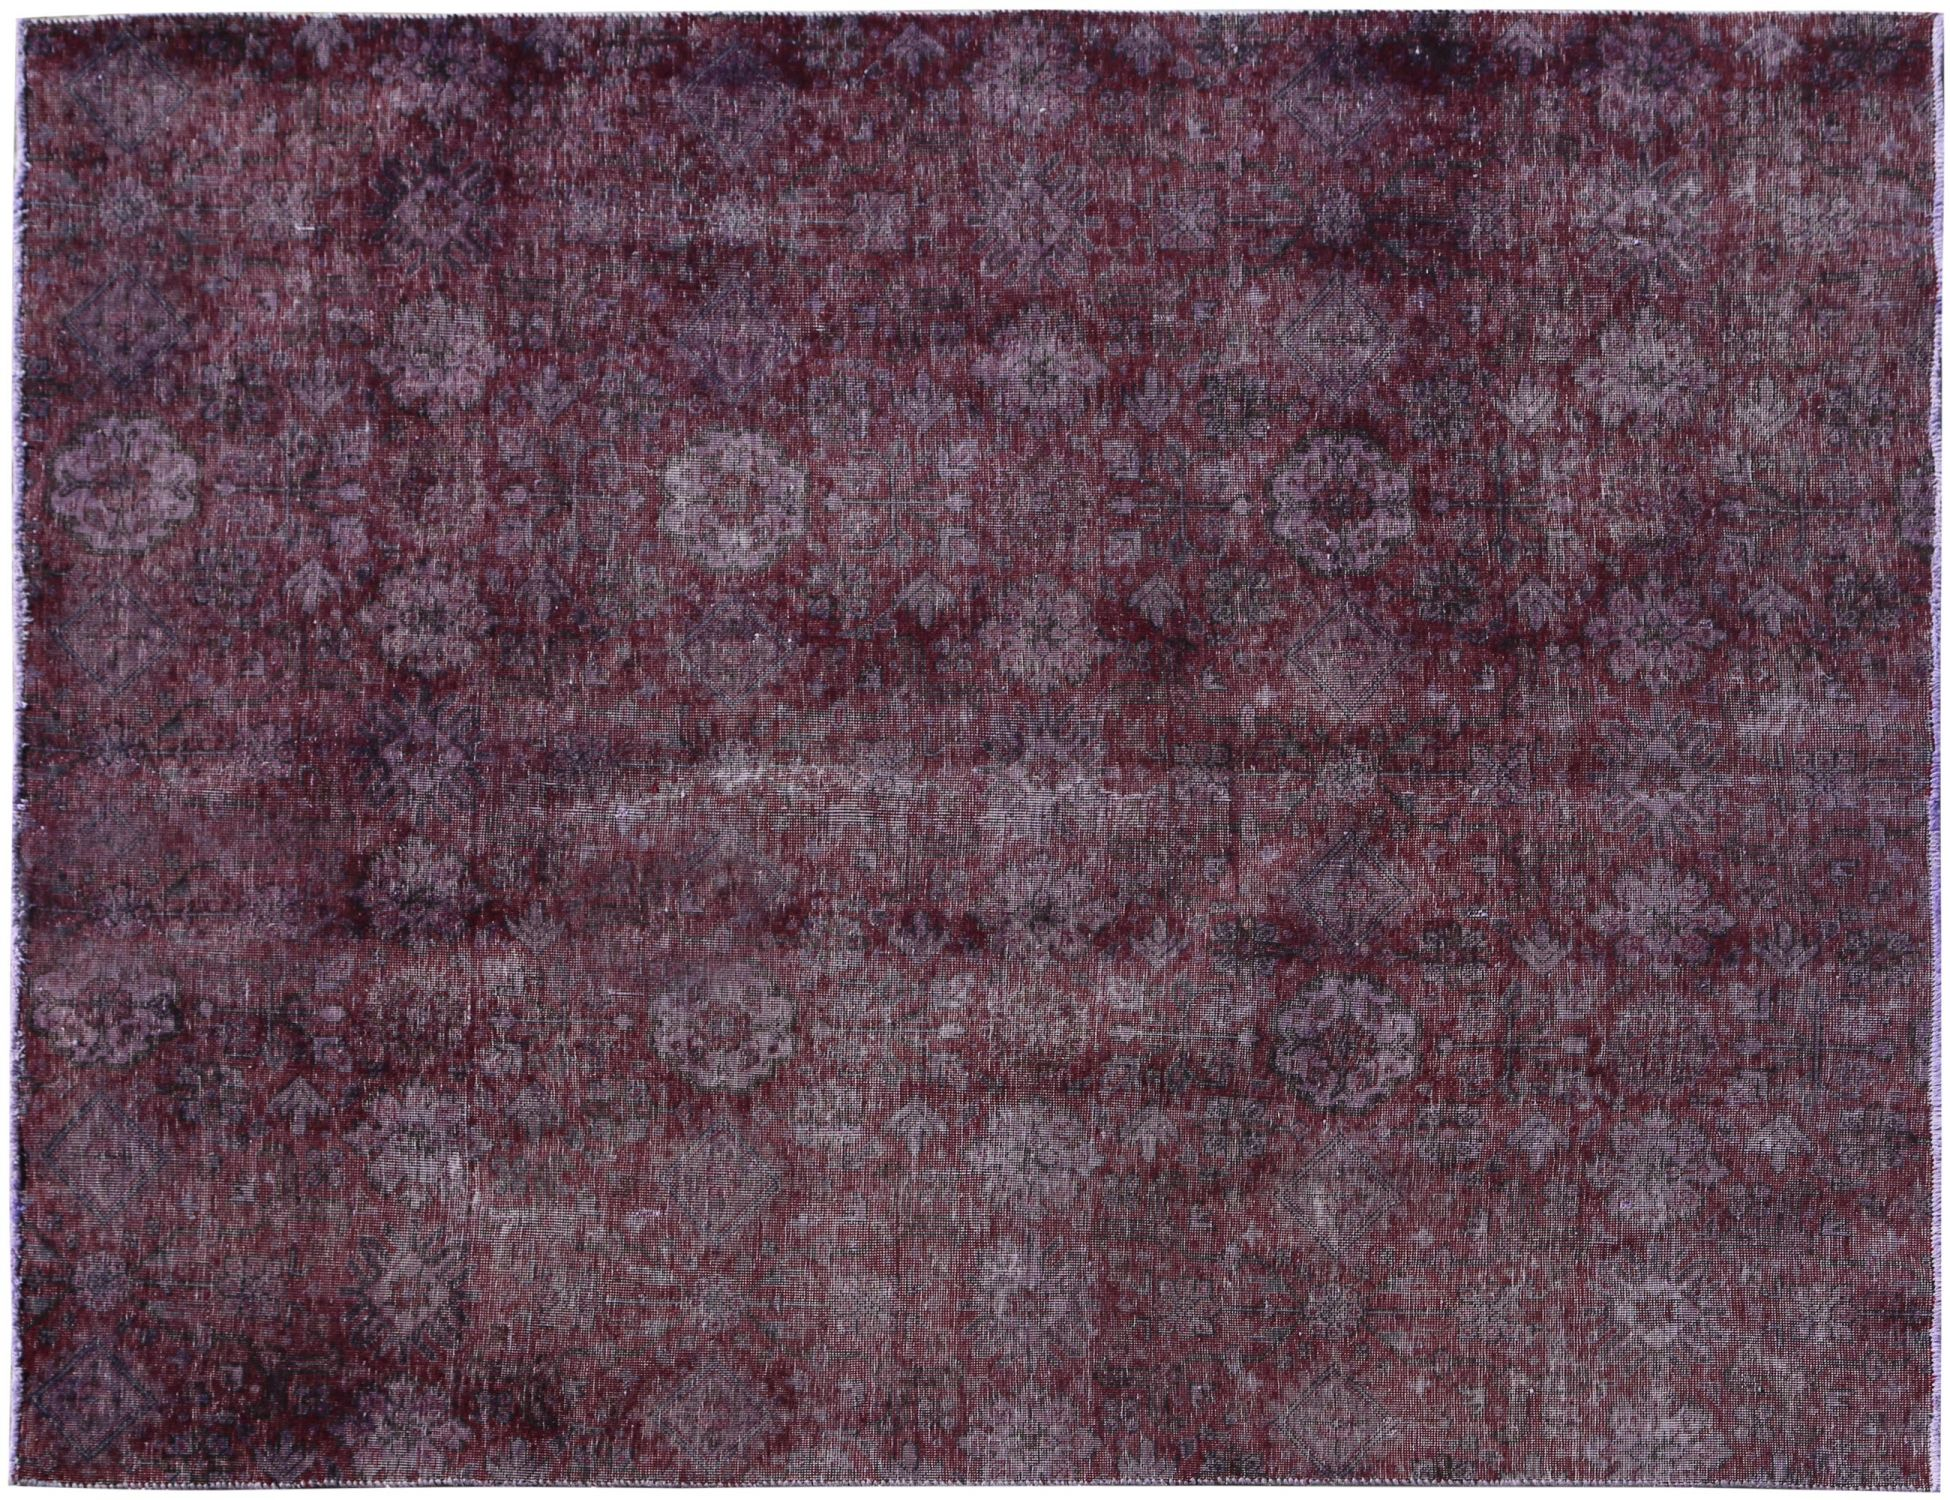 Vintage Carpet  purple <br/>243 x 203 cm